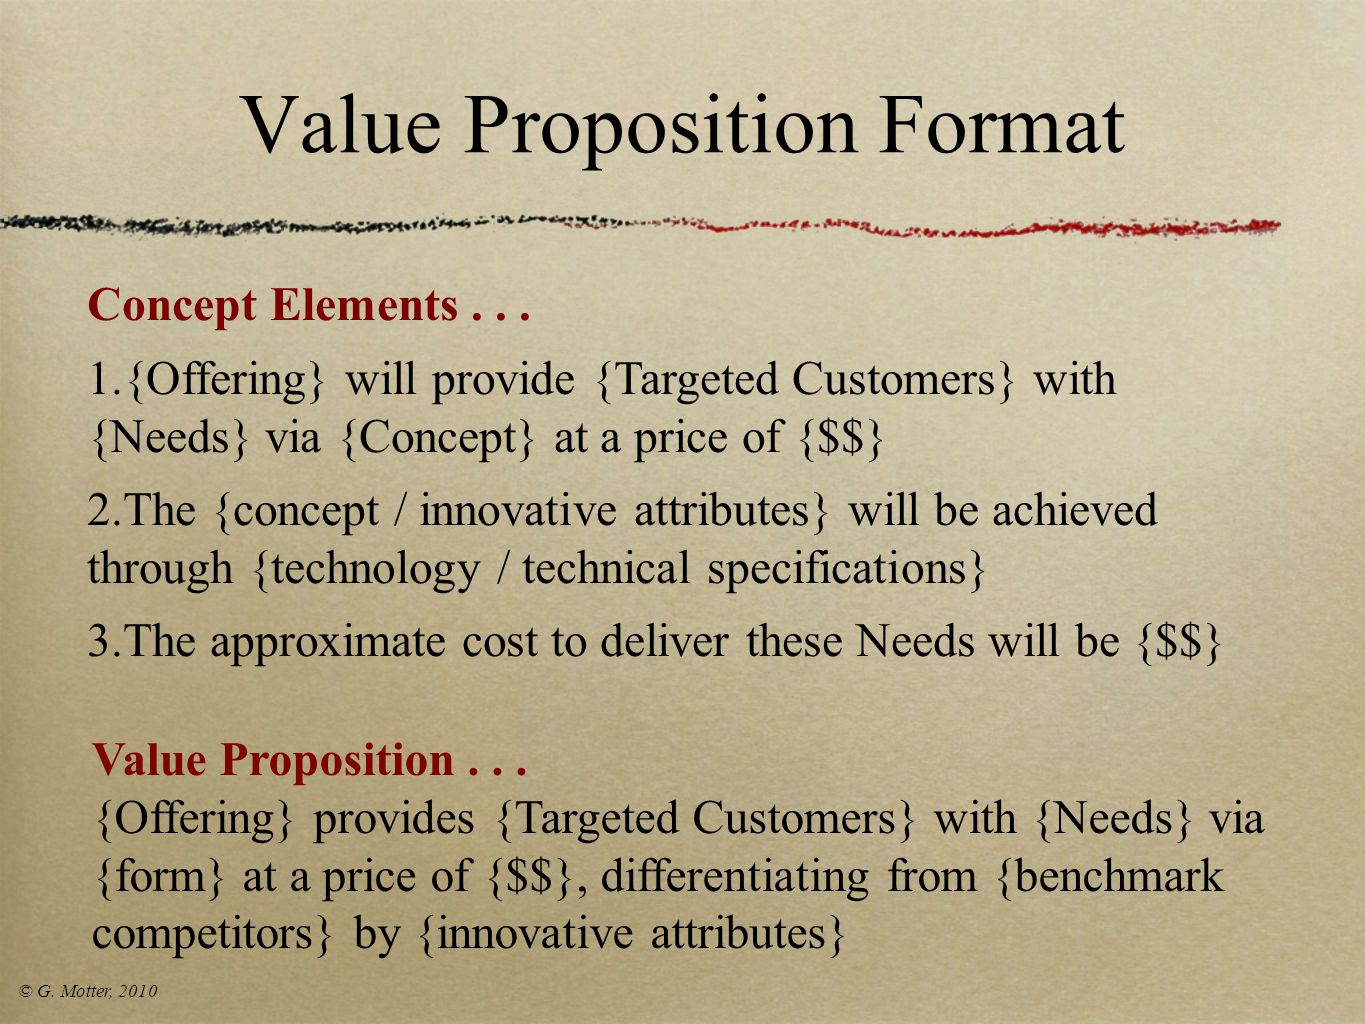 Value Proposition Format